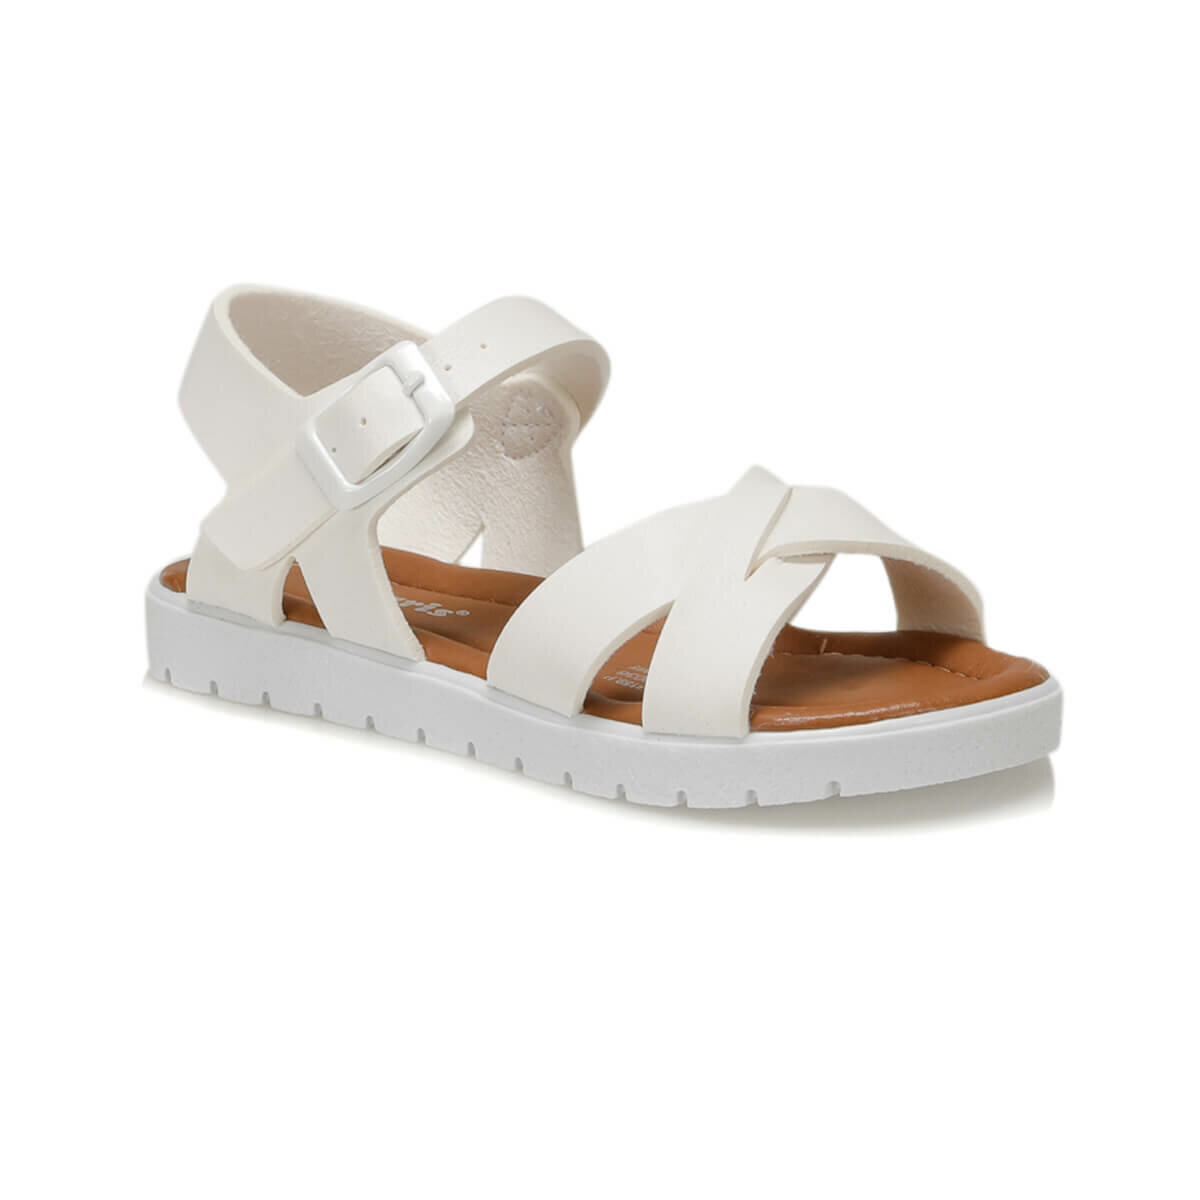 FLO 91.508159.P White Female Child Sandals Polaris